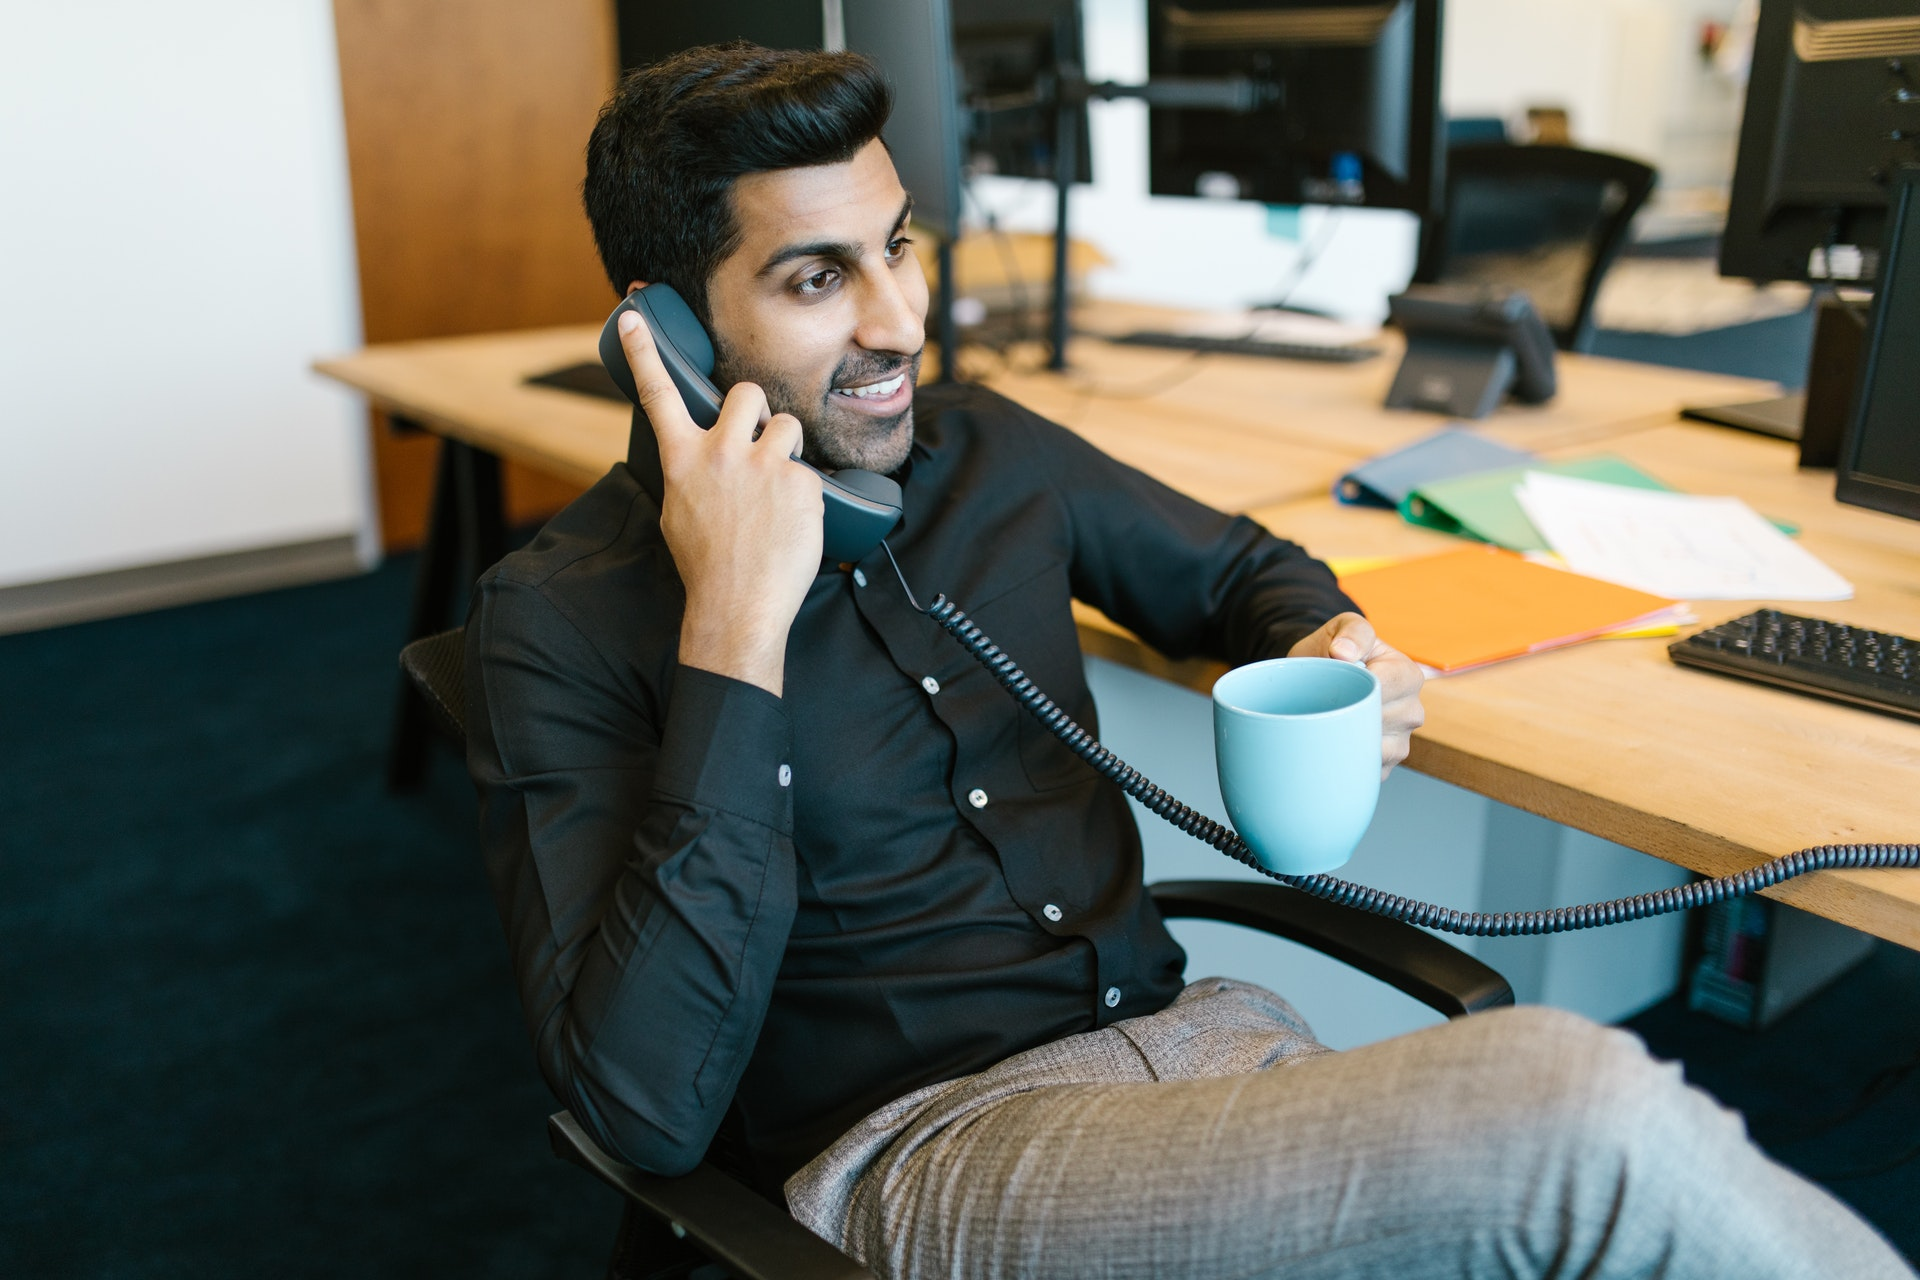 Man sitting in his office drinking coffee and talking on the phone, using a VoIP phone system